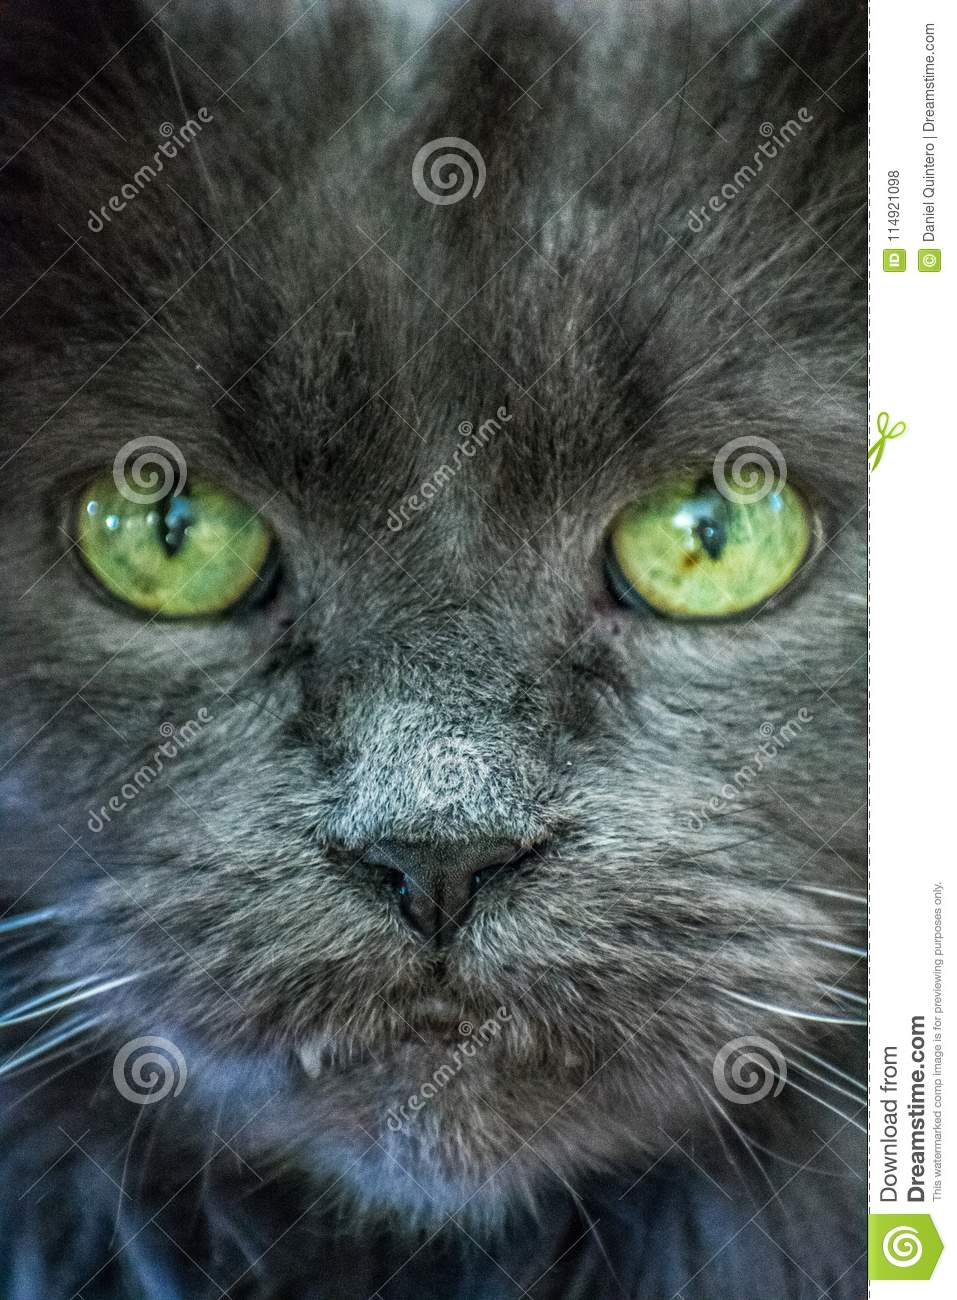 Black Cat Green Eyes Looking At Camera Stock Photo Image Of Flower